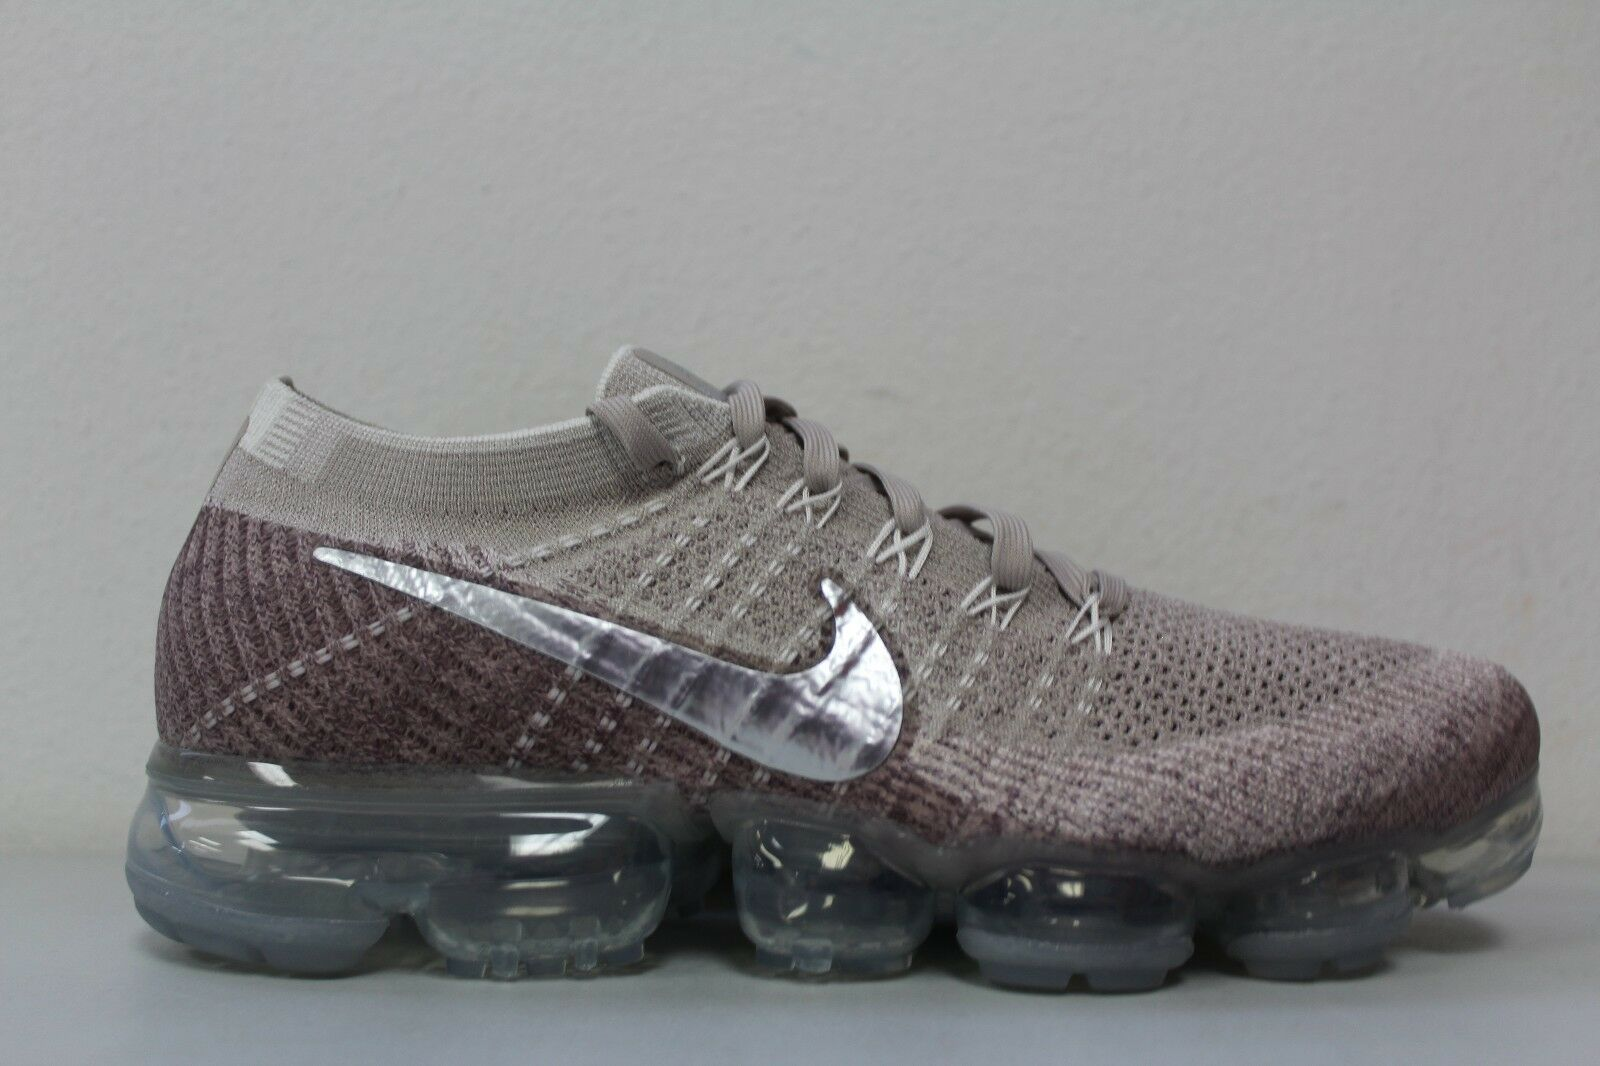 Nike Womens Air Vapormax Flyknit String Chrome Sunset Glow 849557-202 849557-202 849557-202 Size 9.5 71e74a